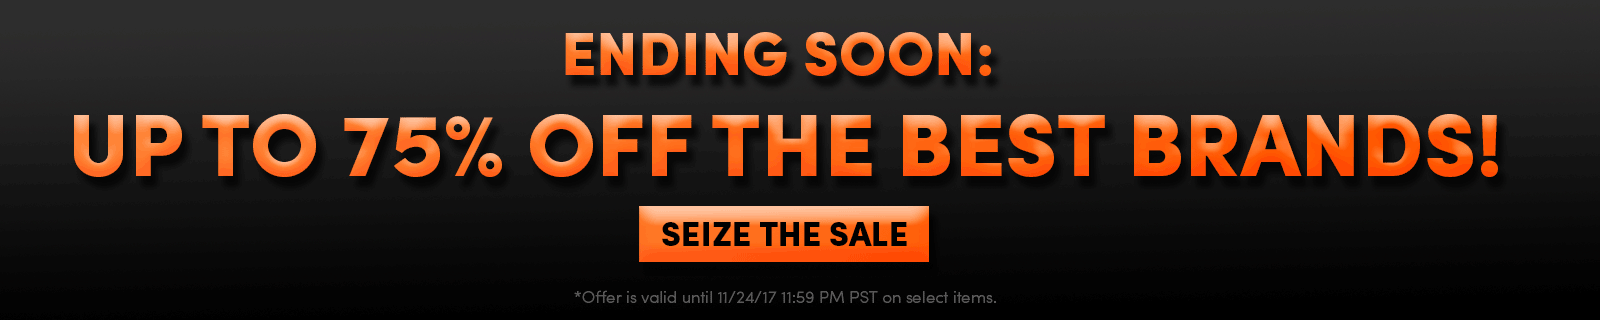 ENDING SOON: Up to 75% OFF The Best Brands! [Seize the savings]